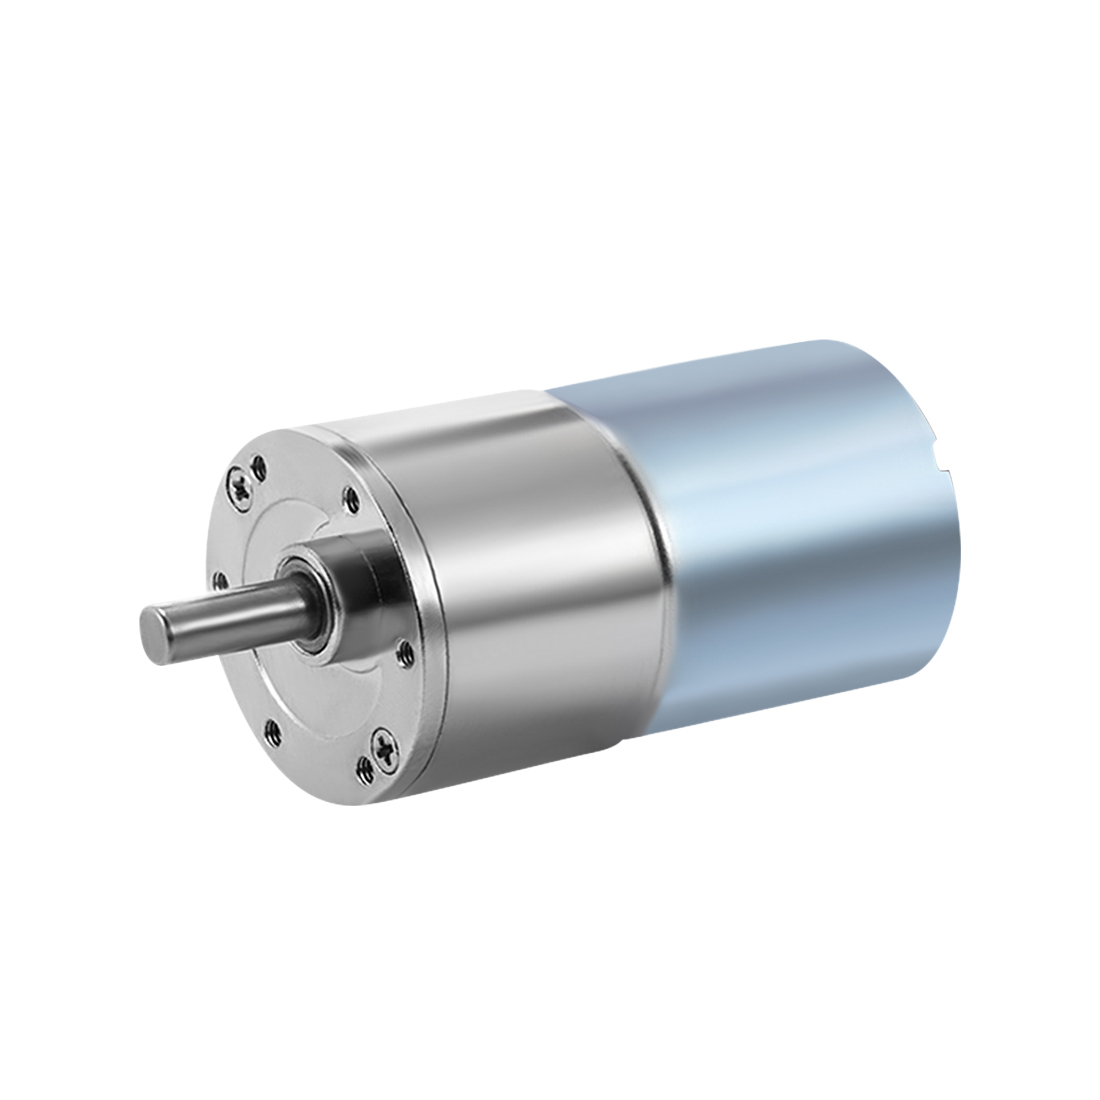 DC 12V 20RPM Micro Gear Box Motor Speed Reduction Electric Gearbox Eccentric Output Shaft